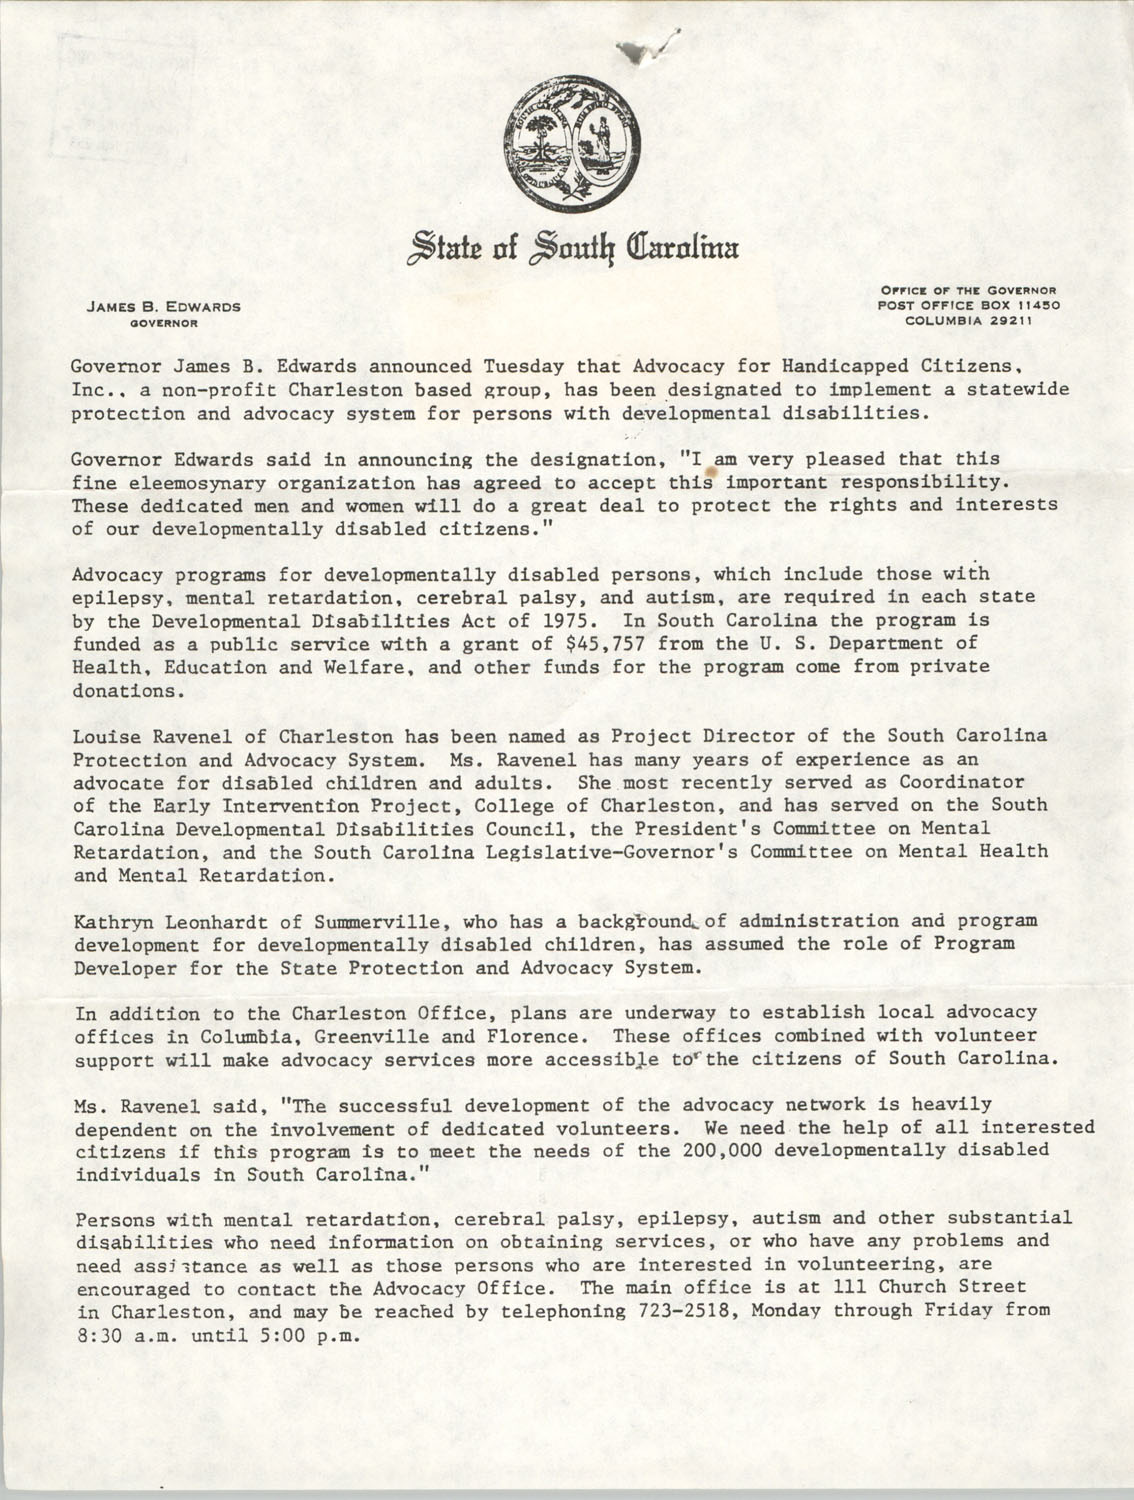 State of South Carolina Statement on Advocacy for Handicapped Citizens, Inc.